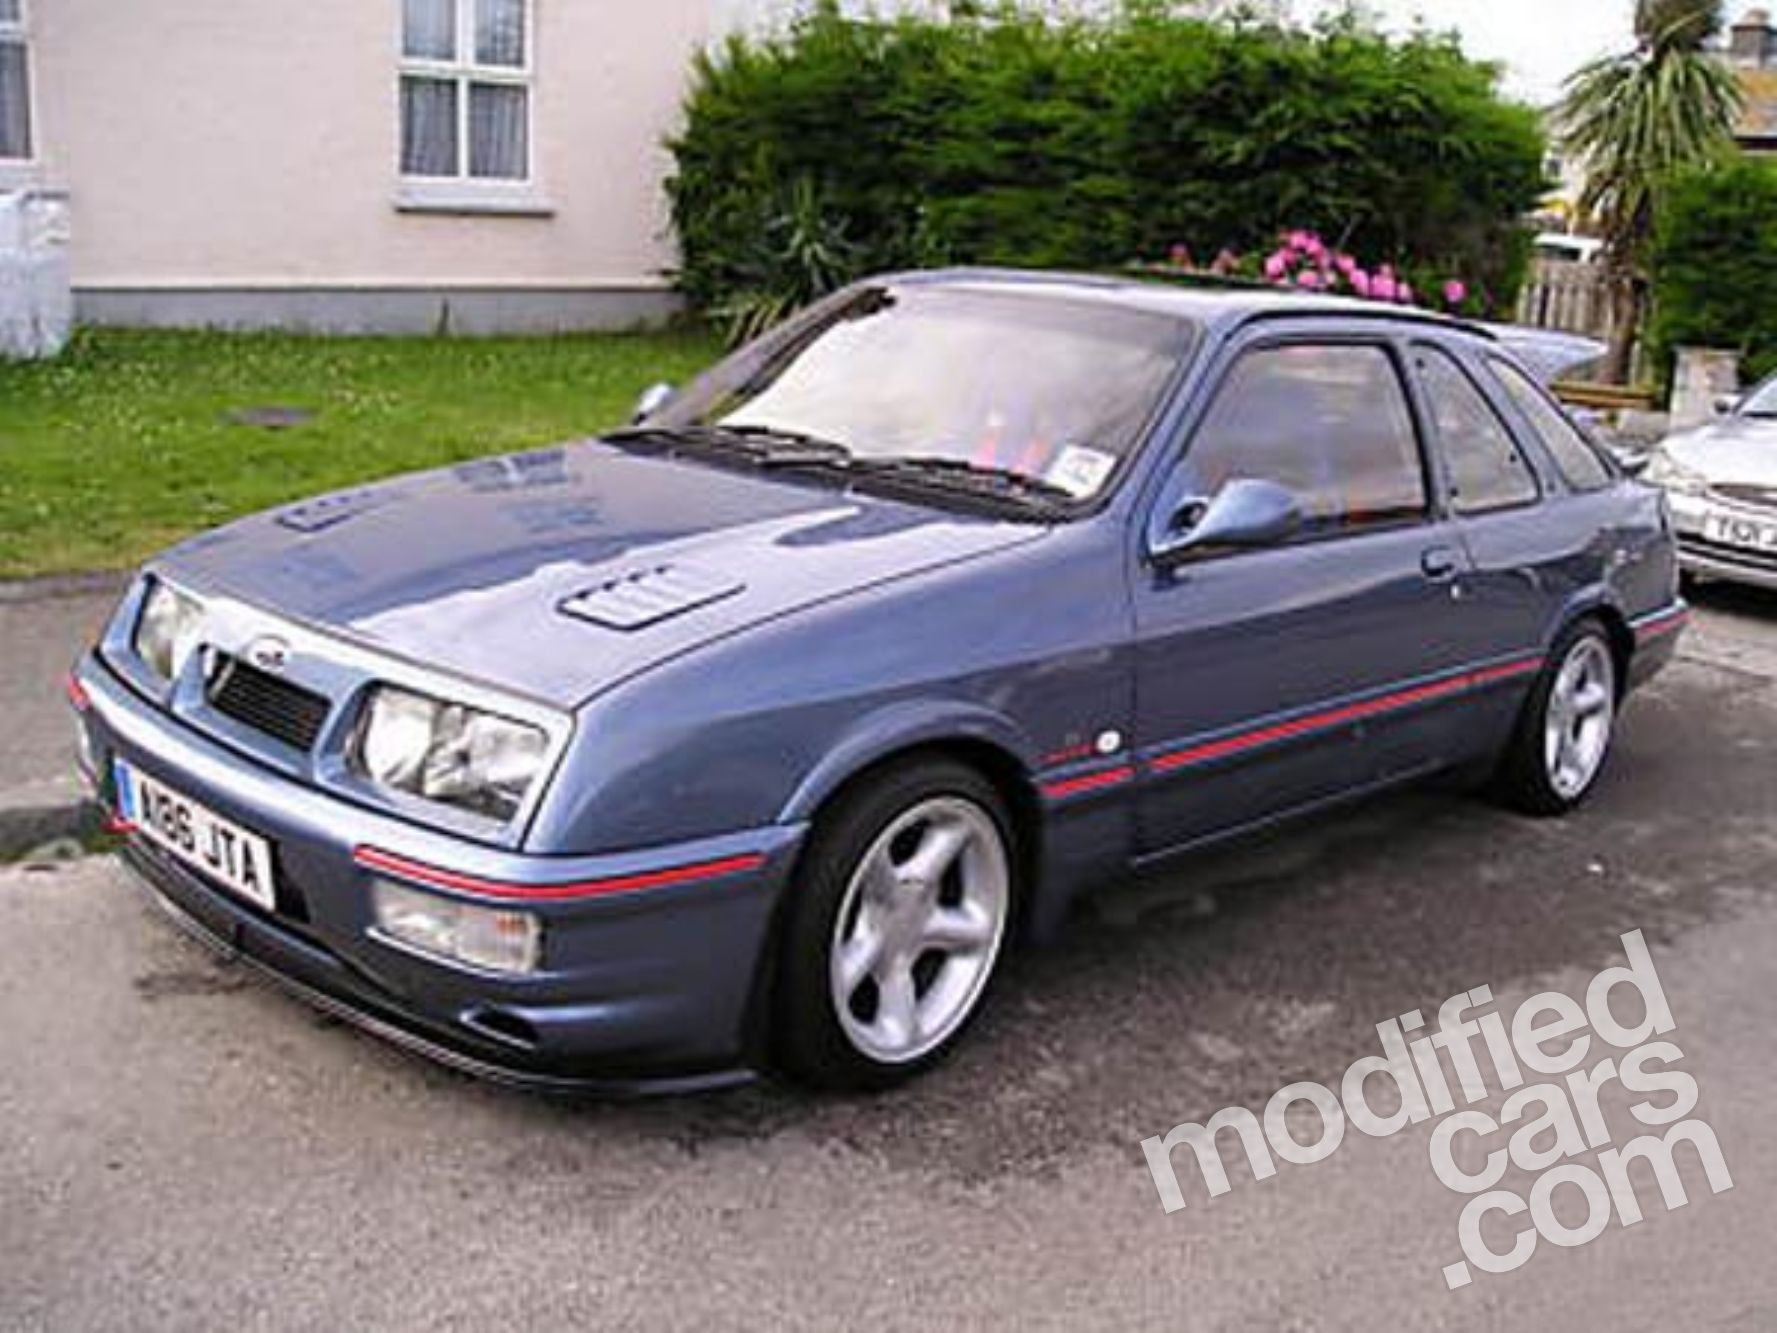 ford sierra xr4i picture 13 reviews news specs buy car. Black Bedroom Furniture Sets. Home Design Ideas